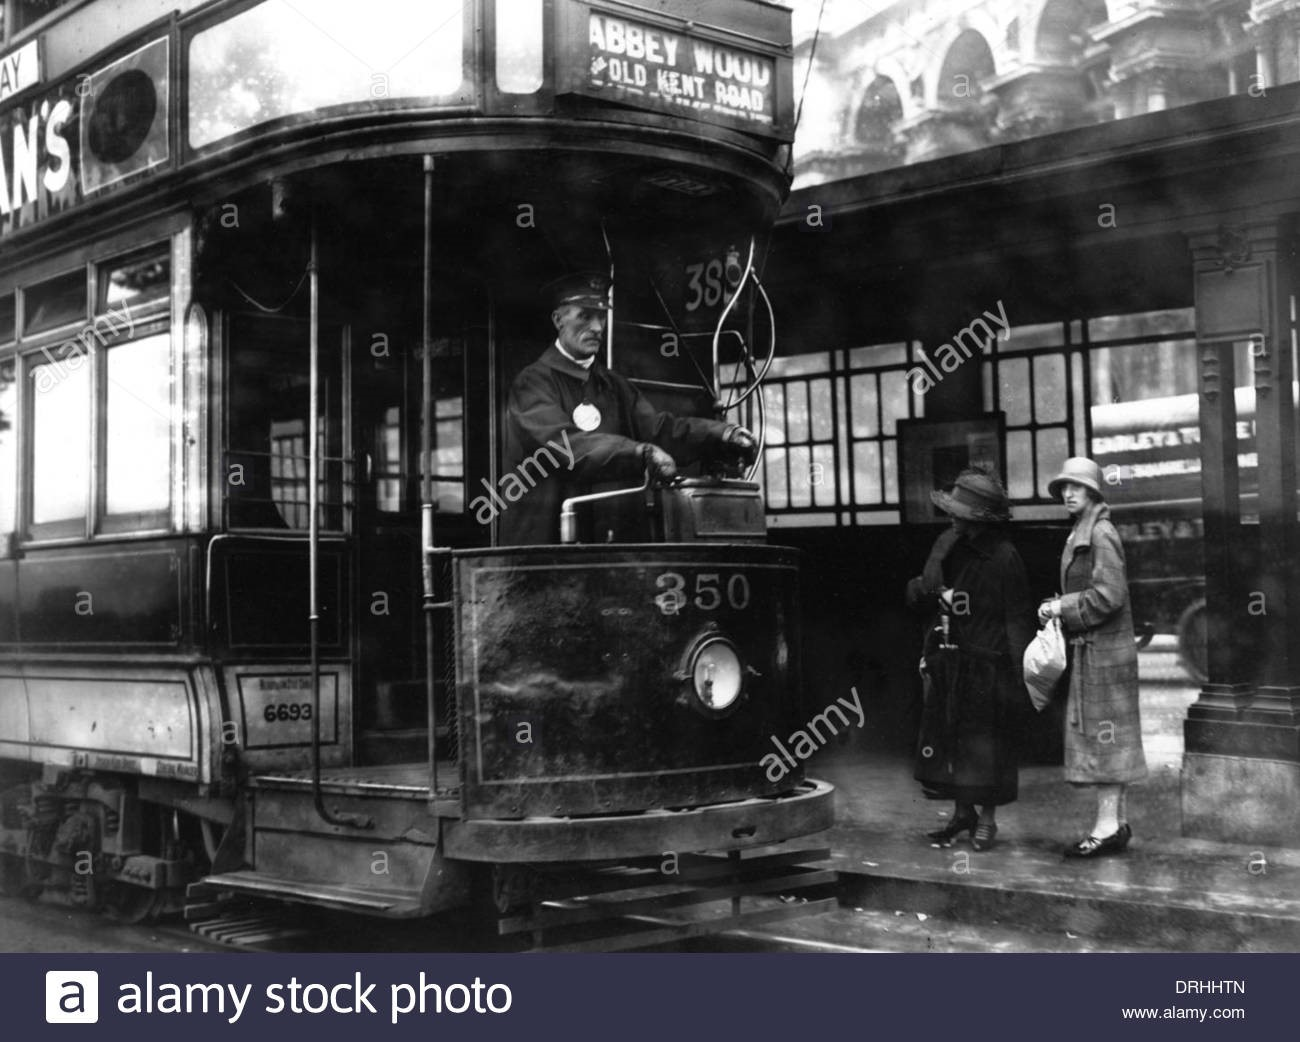 A tram outside Blackfriars tram terminal in London.jpg